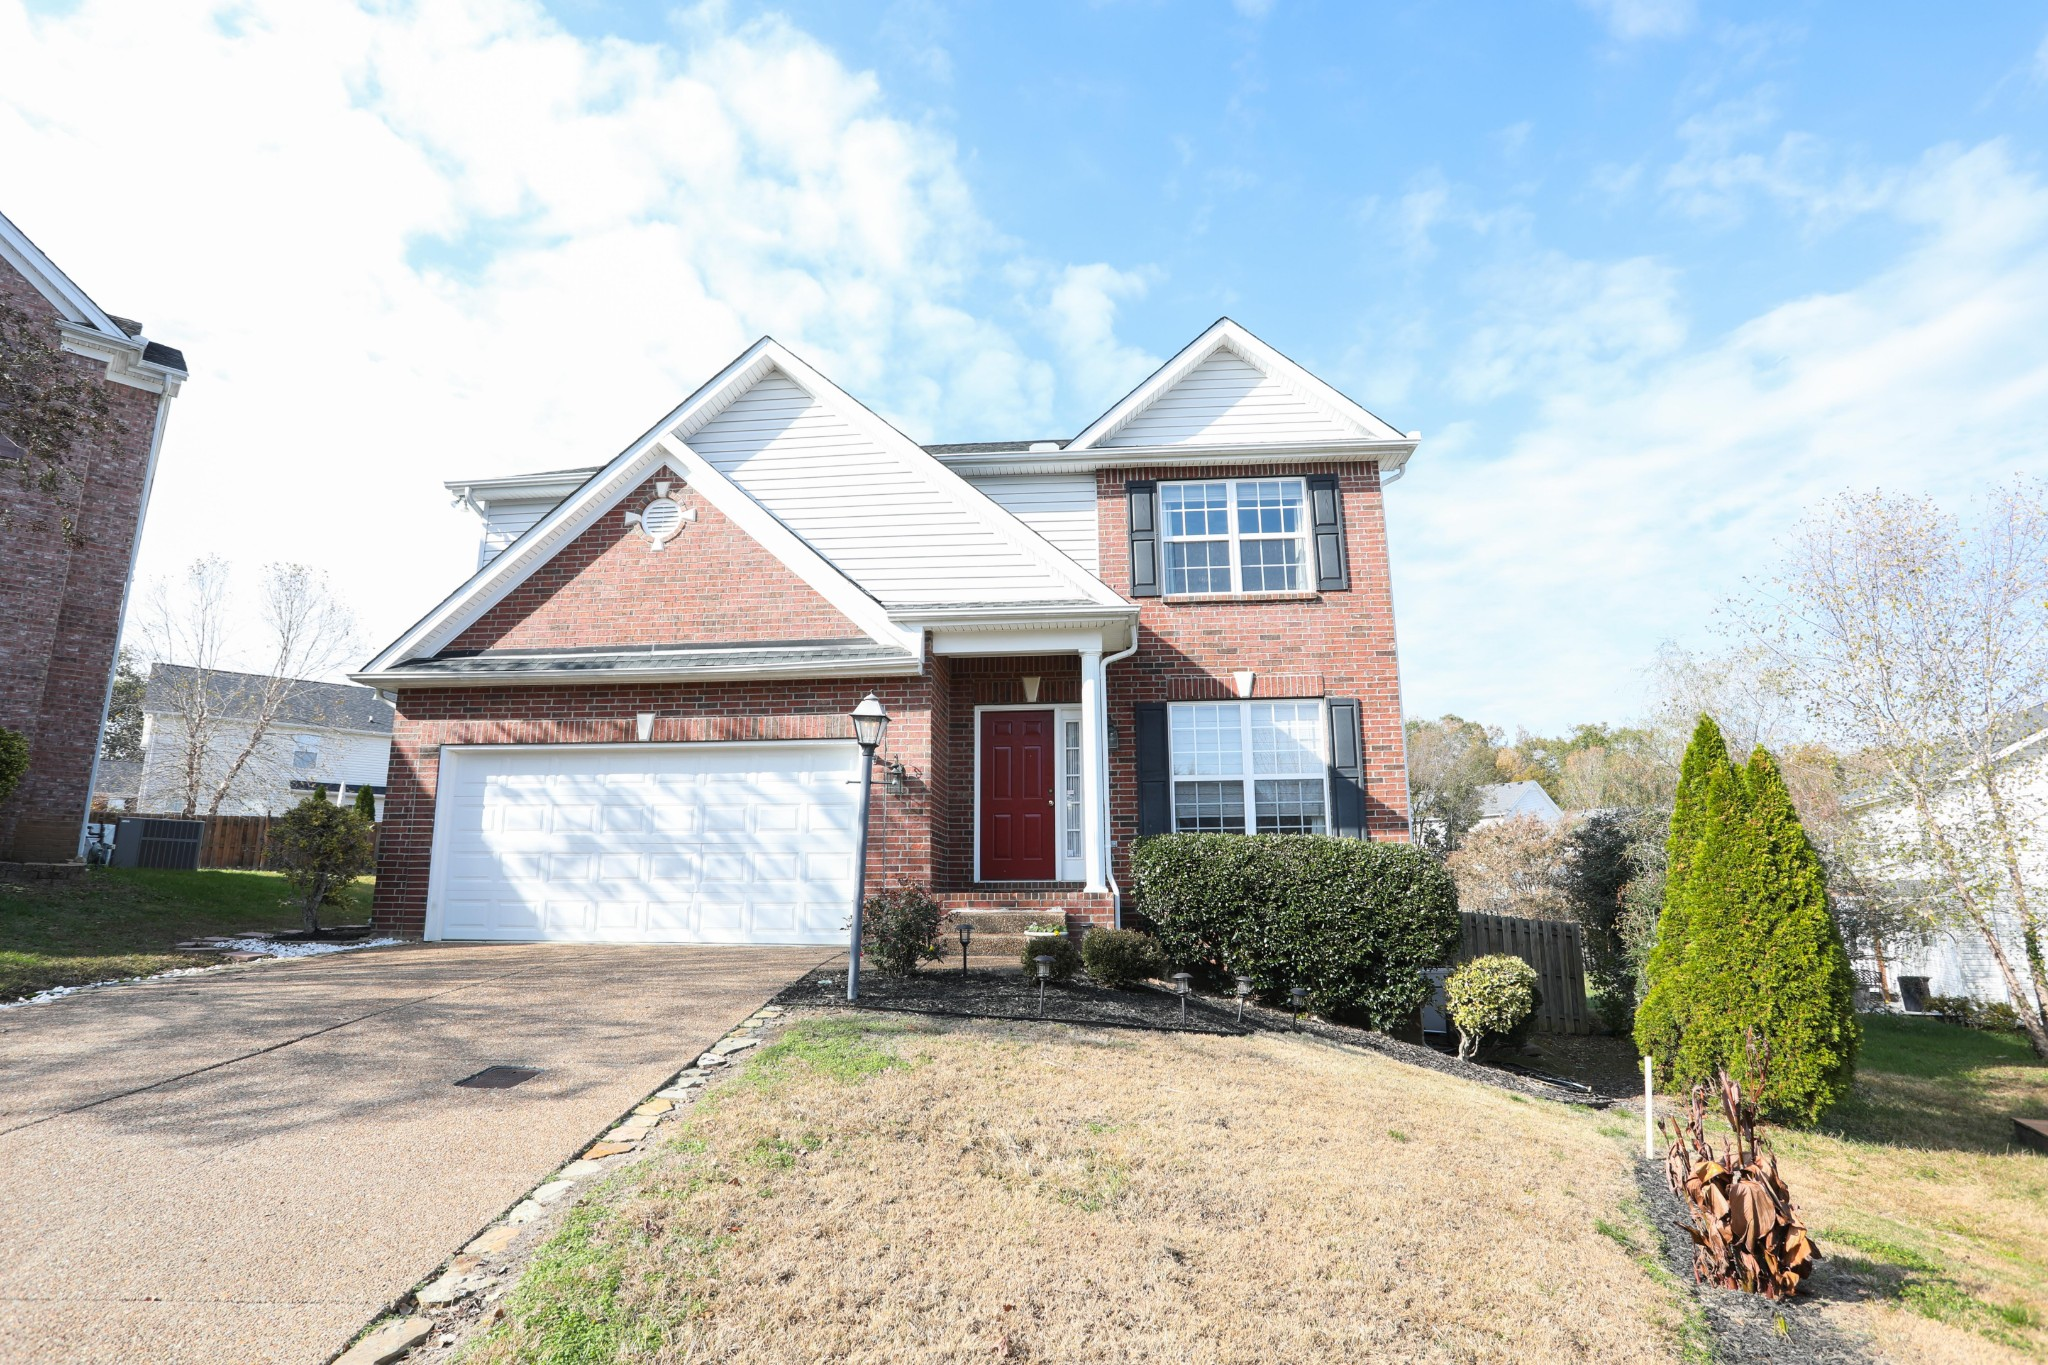 7356 Olmsted Dr, Bellevue in Davidson County County, TN 37221 Home for Sale